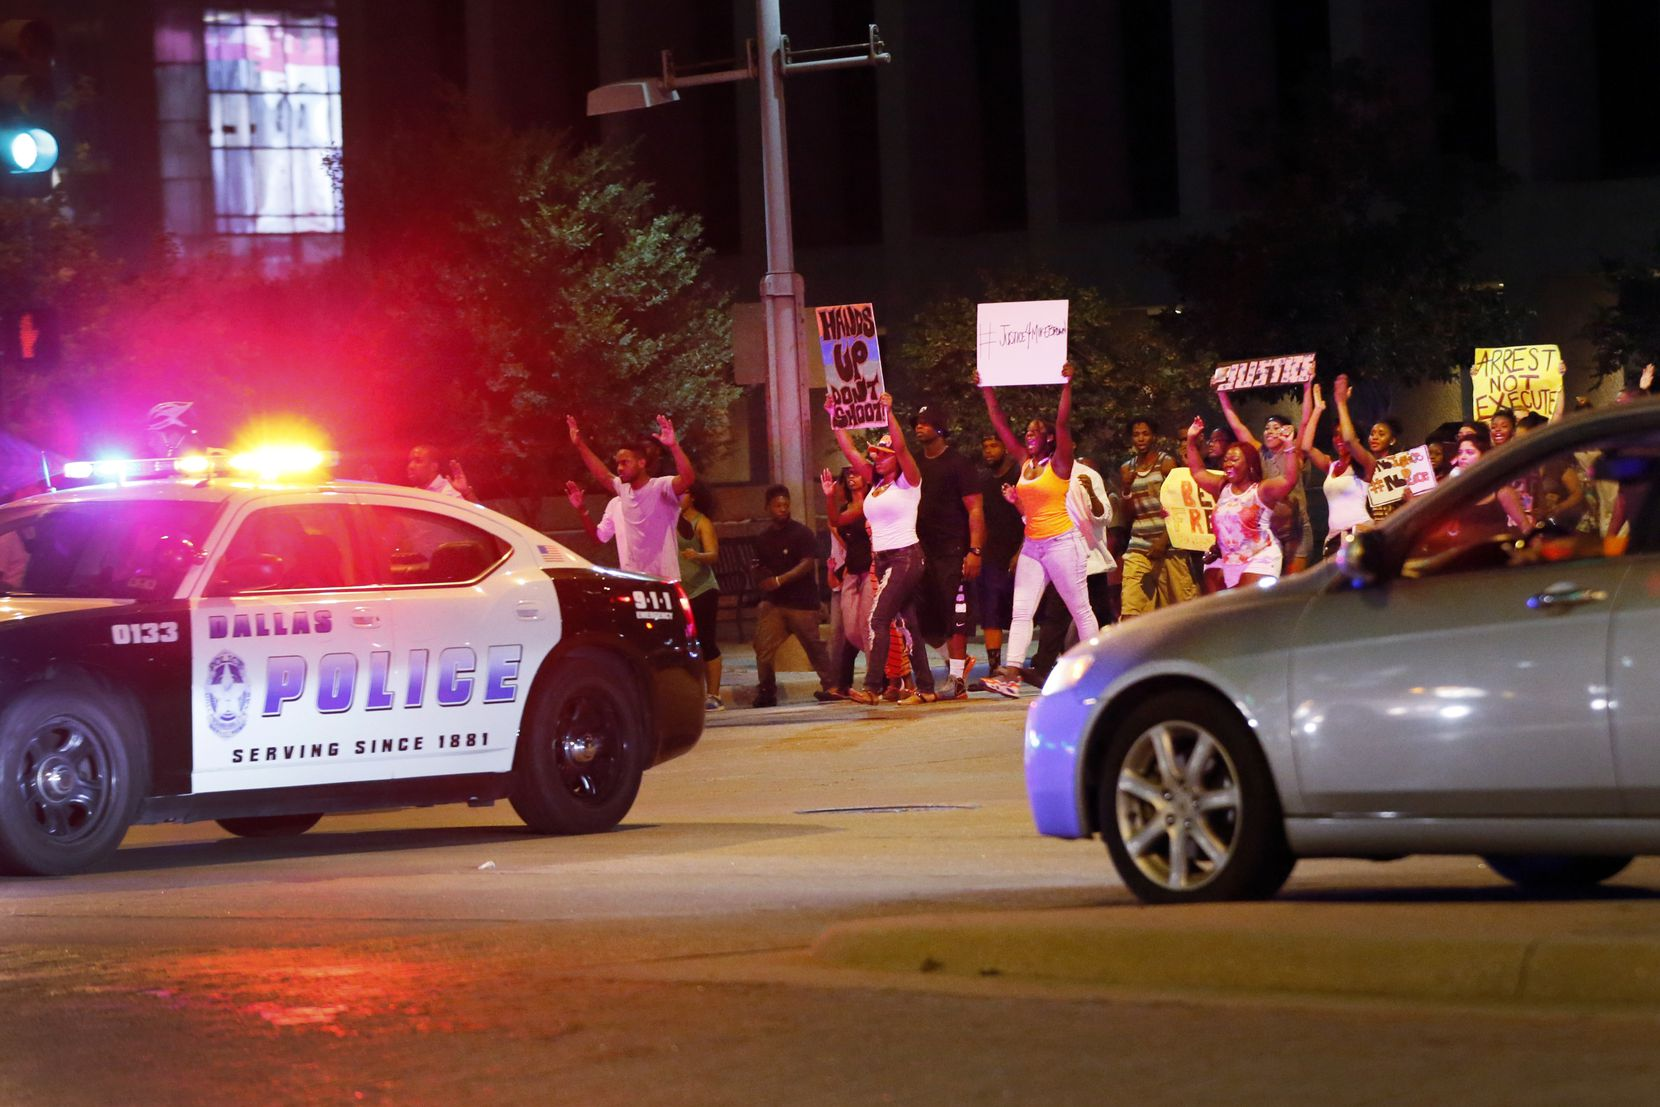 People walk along Mainr Street in Downtown Dallas near South Griffin Street while they participate in a hands up rally in support of gunned down Ferguson Missouri teen Mike Brown August 20, 2014. (Kye R. Lee/The Dallas Morning News)